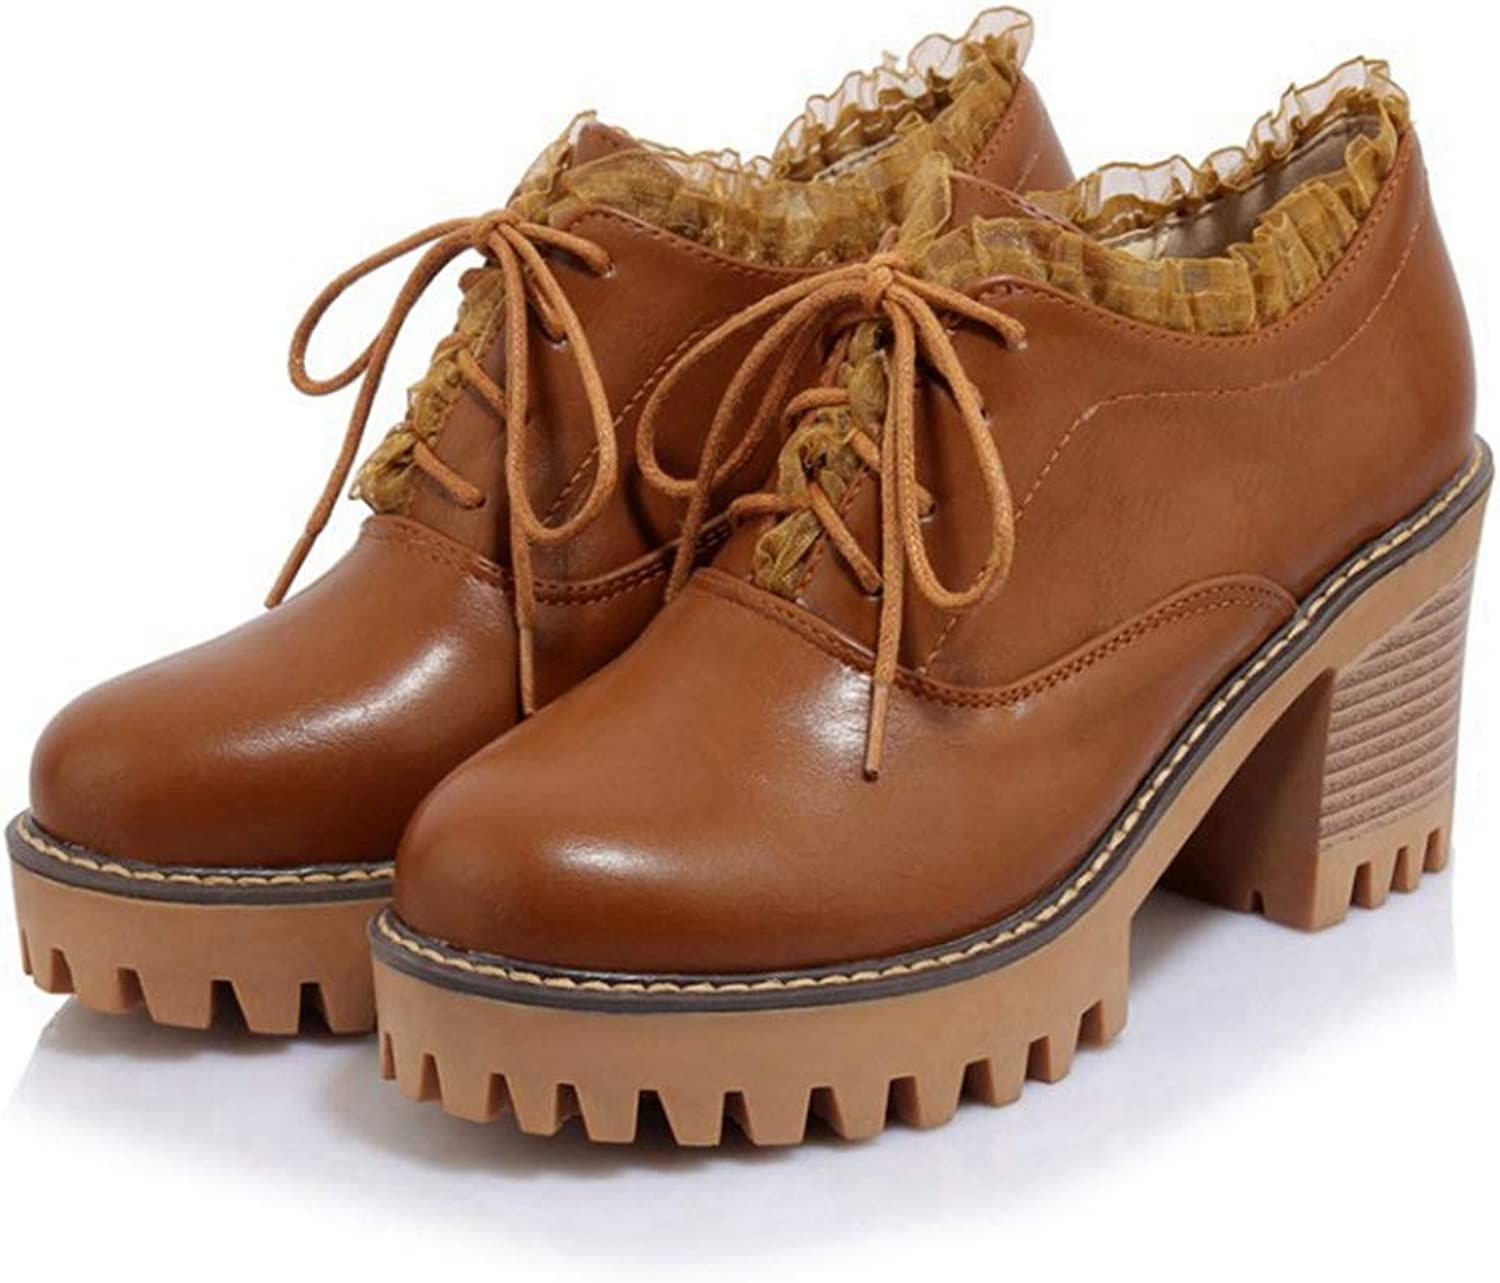 CYBLING Womens Lace-up Wingtip Oxfords Pumps Vintage Plaform Chunky Mid Heel Brogues shoes